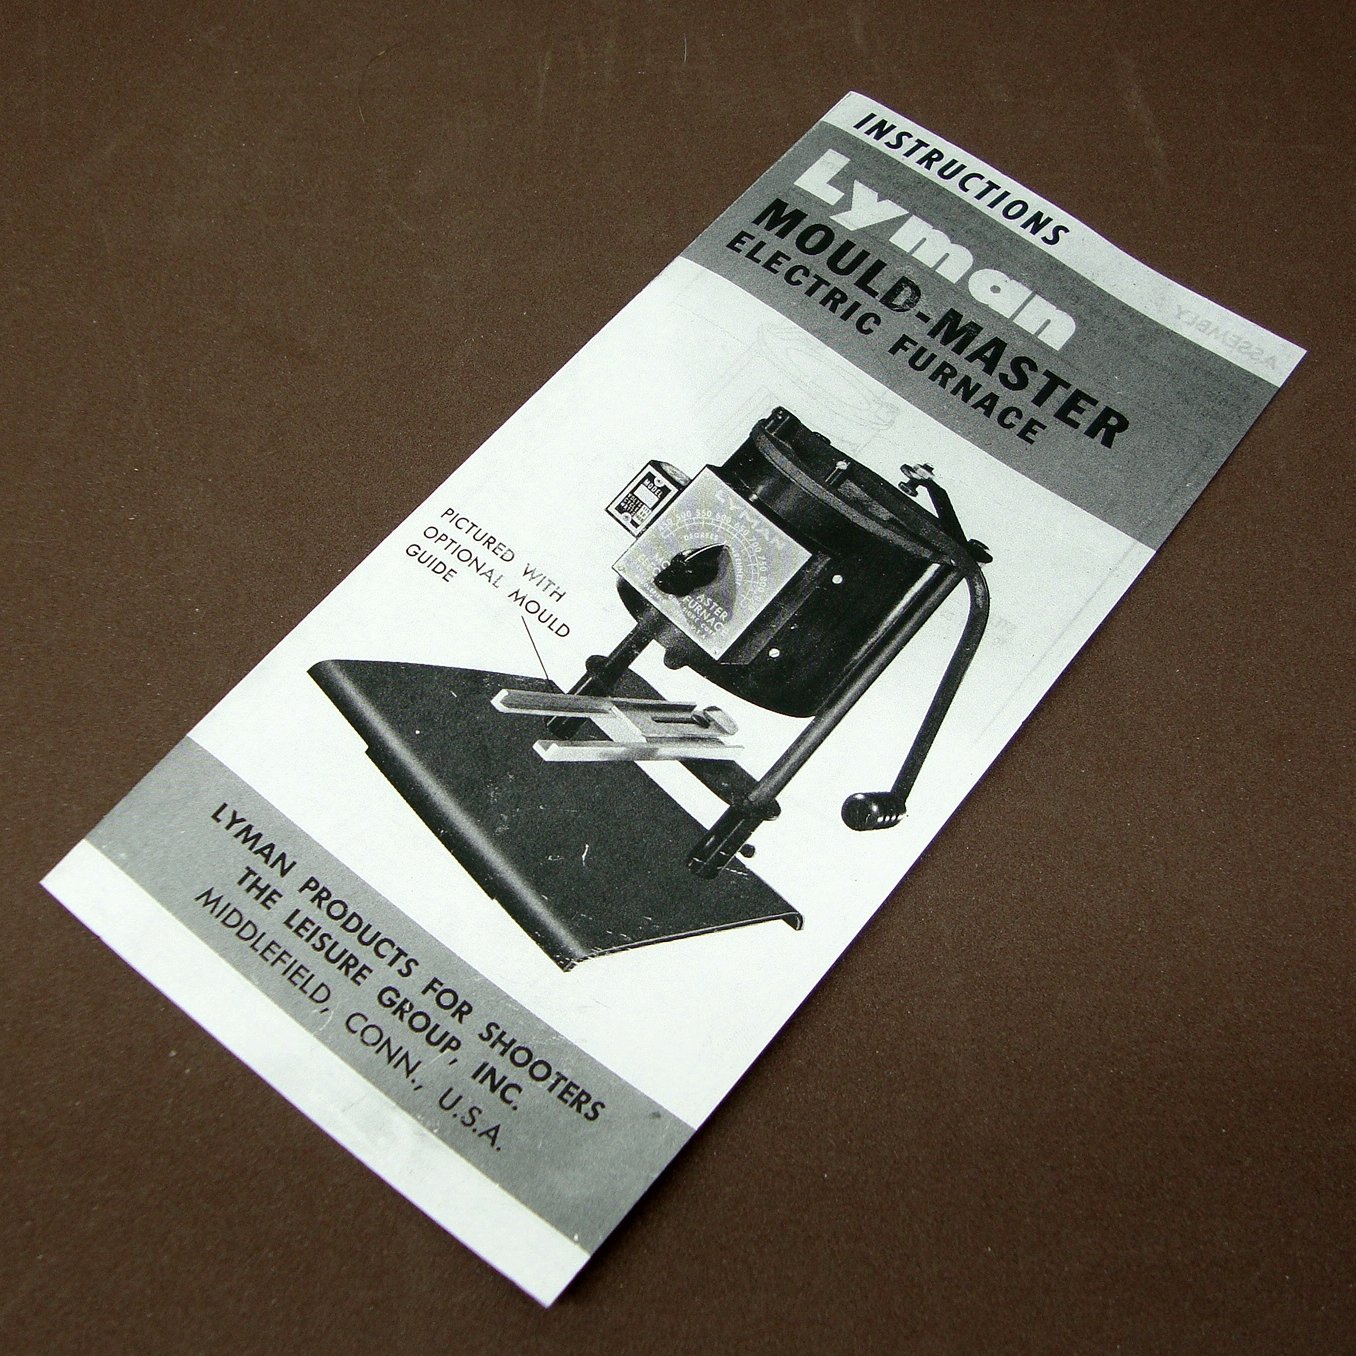 Lyman Mould Master Electric Furnace Instruction Sheet.